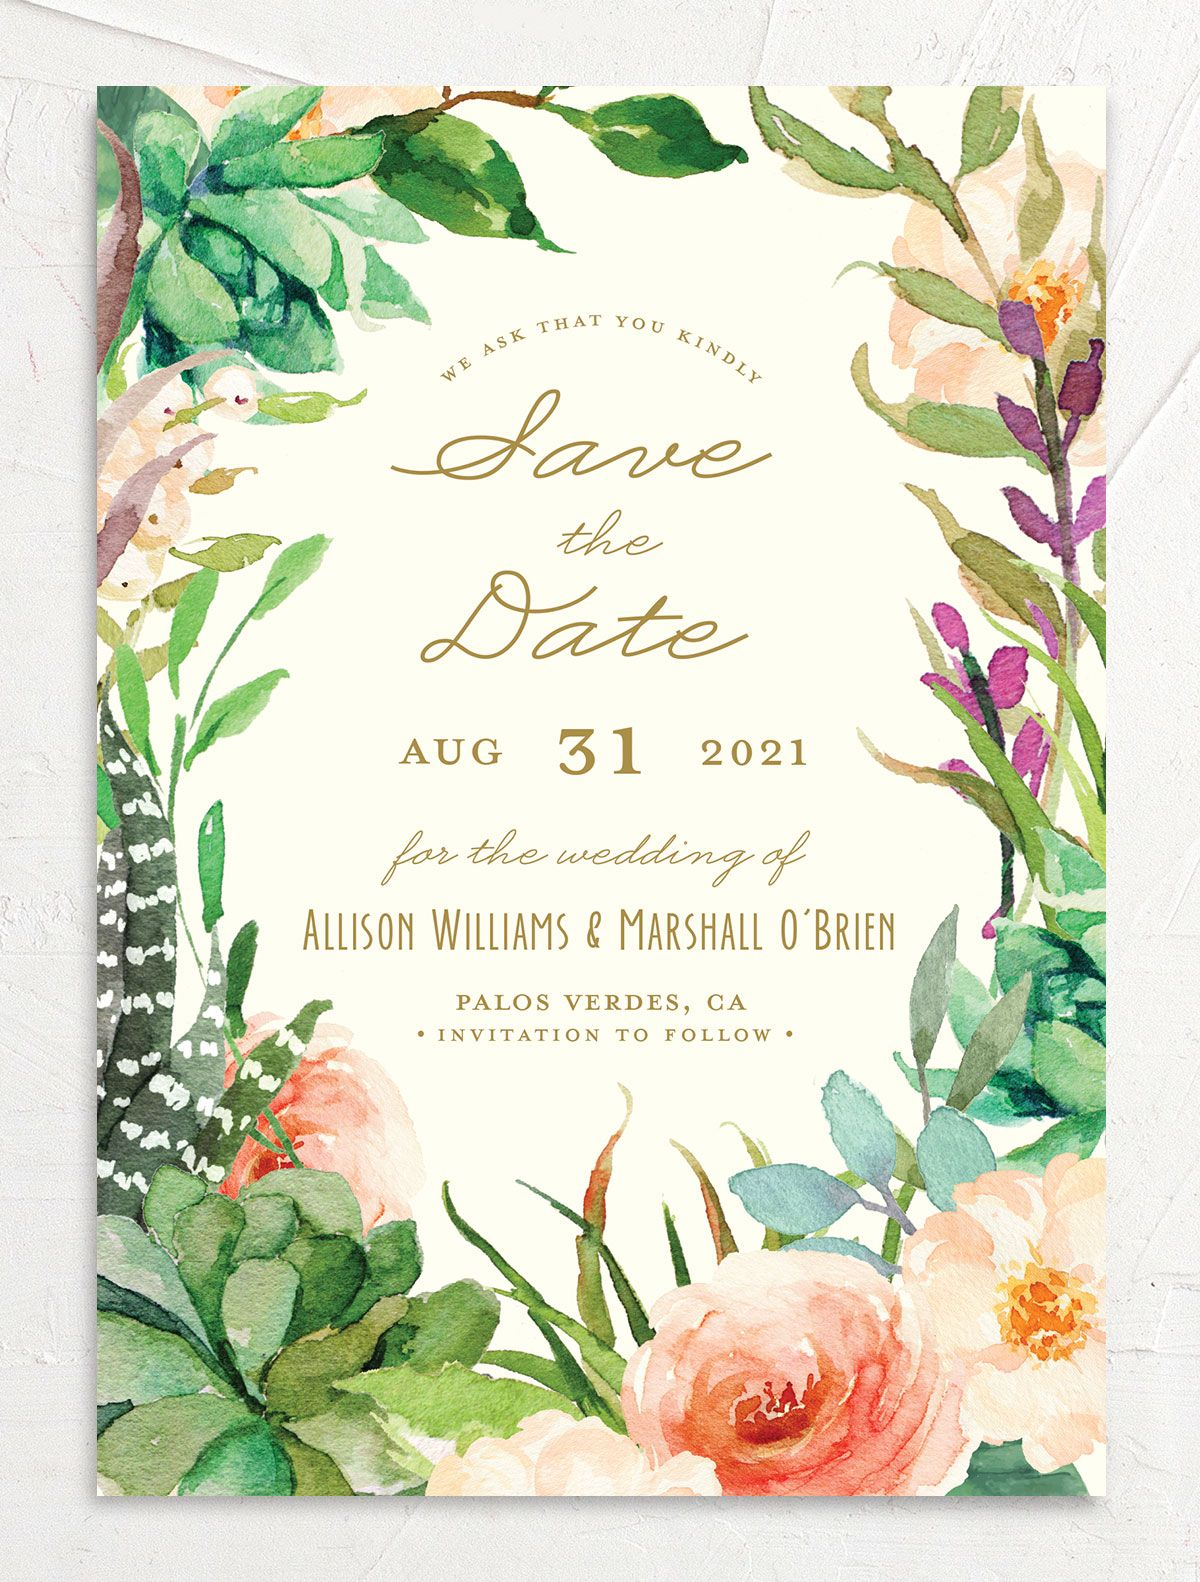 Elegant Oasis Wedding Save the Date front merch